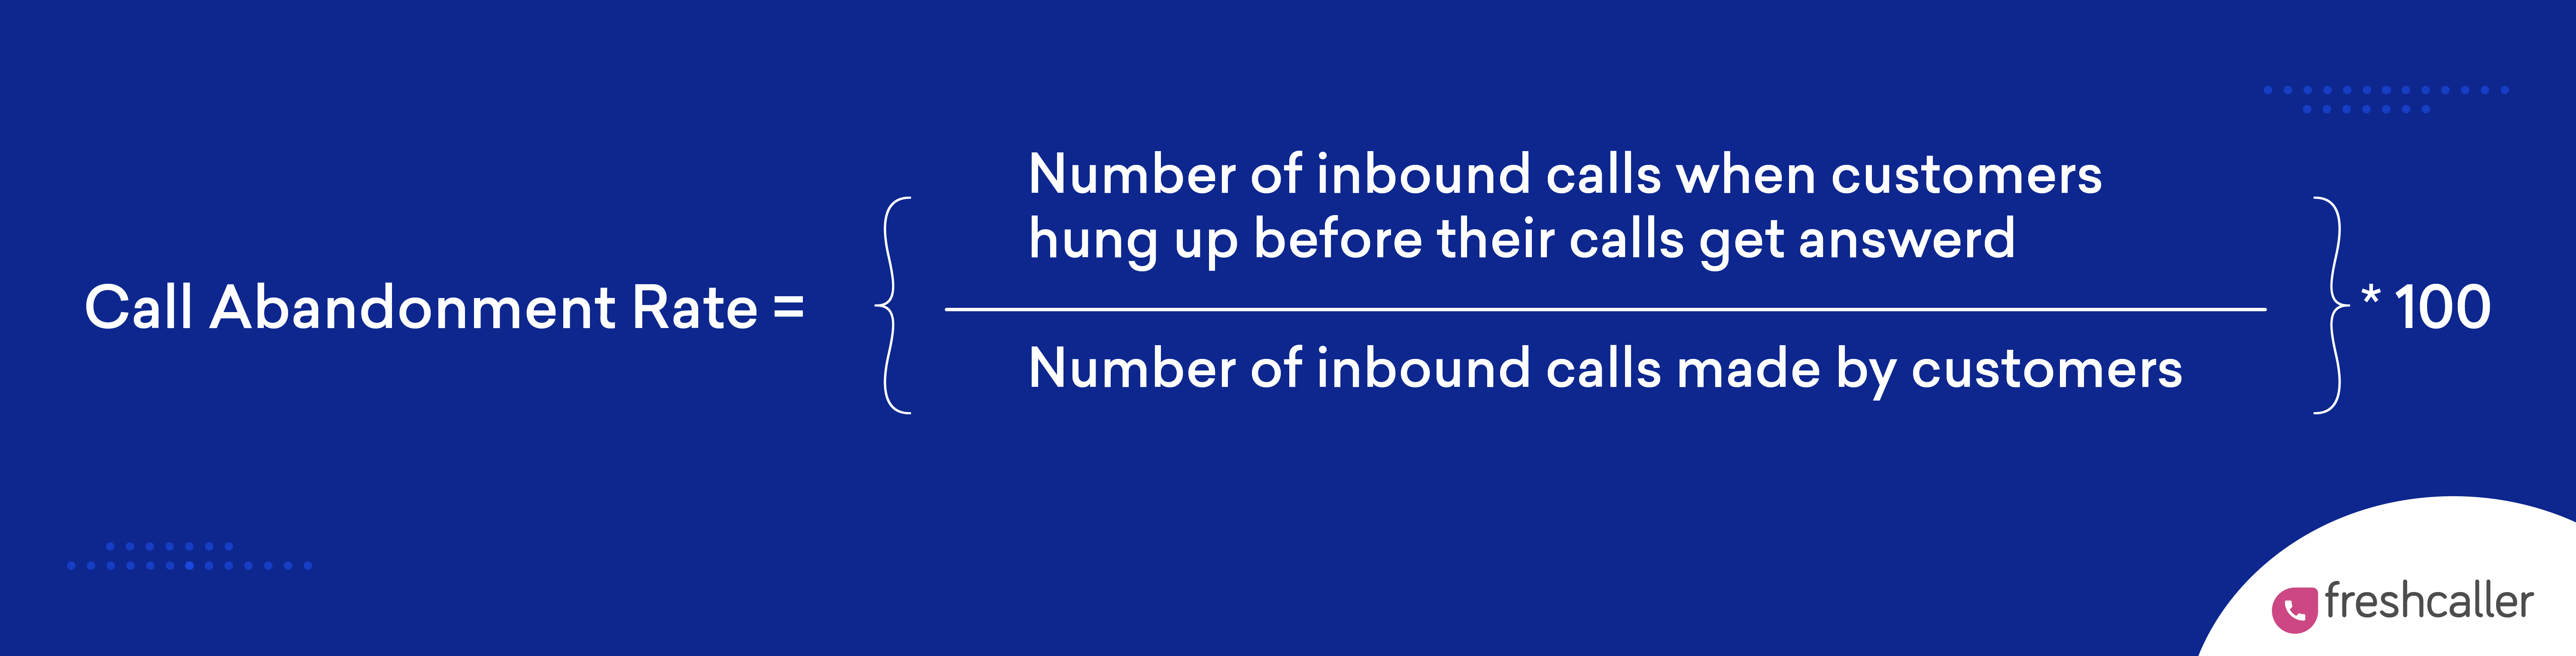 formula for calculating call abandonment rate in a call center